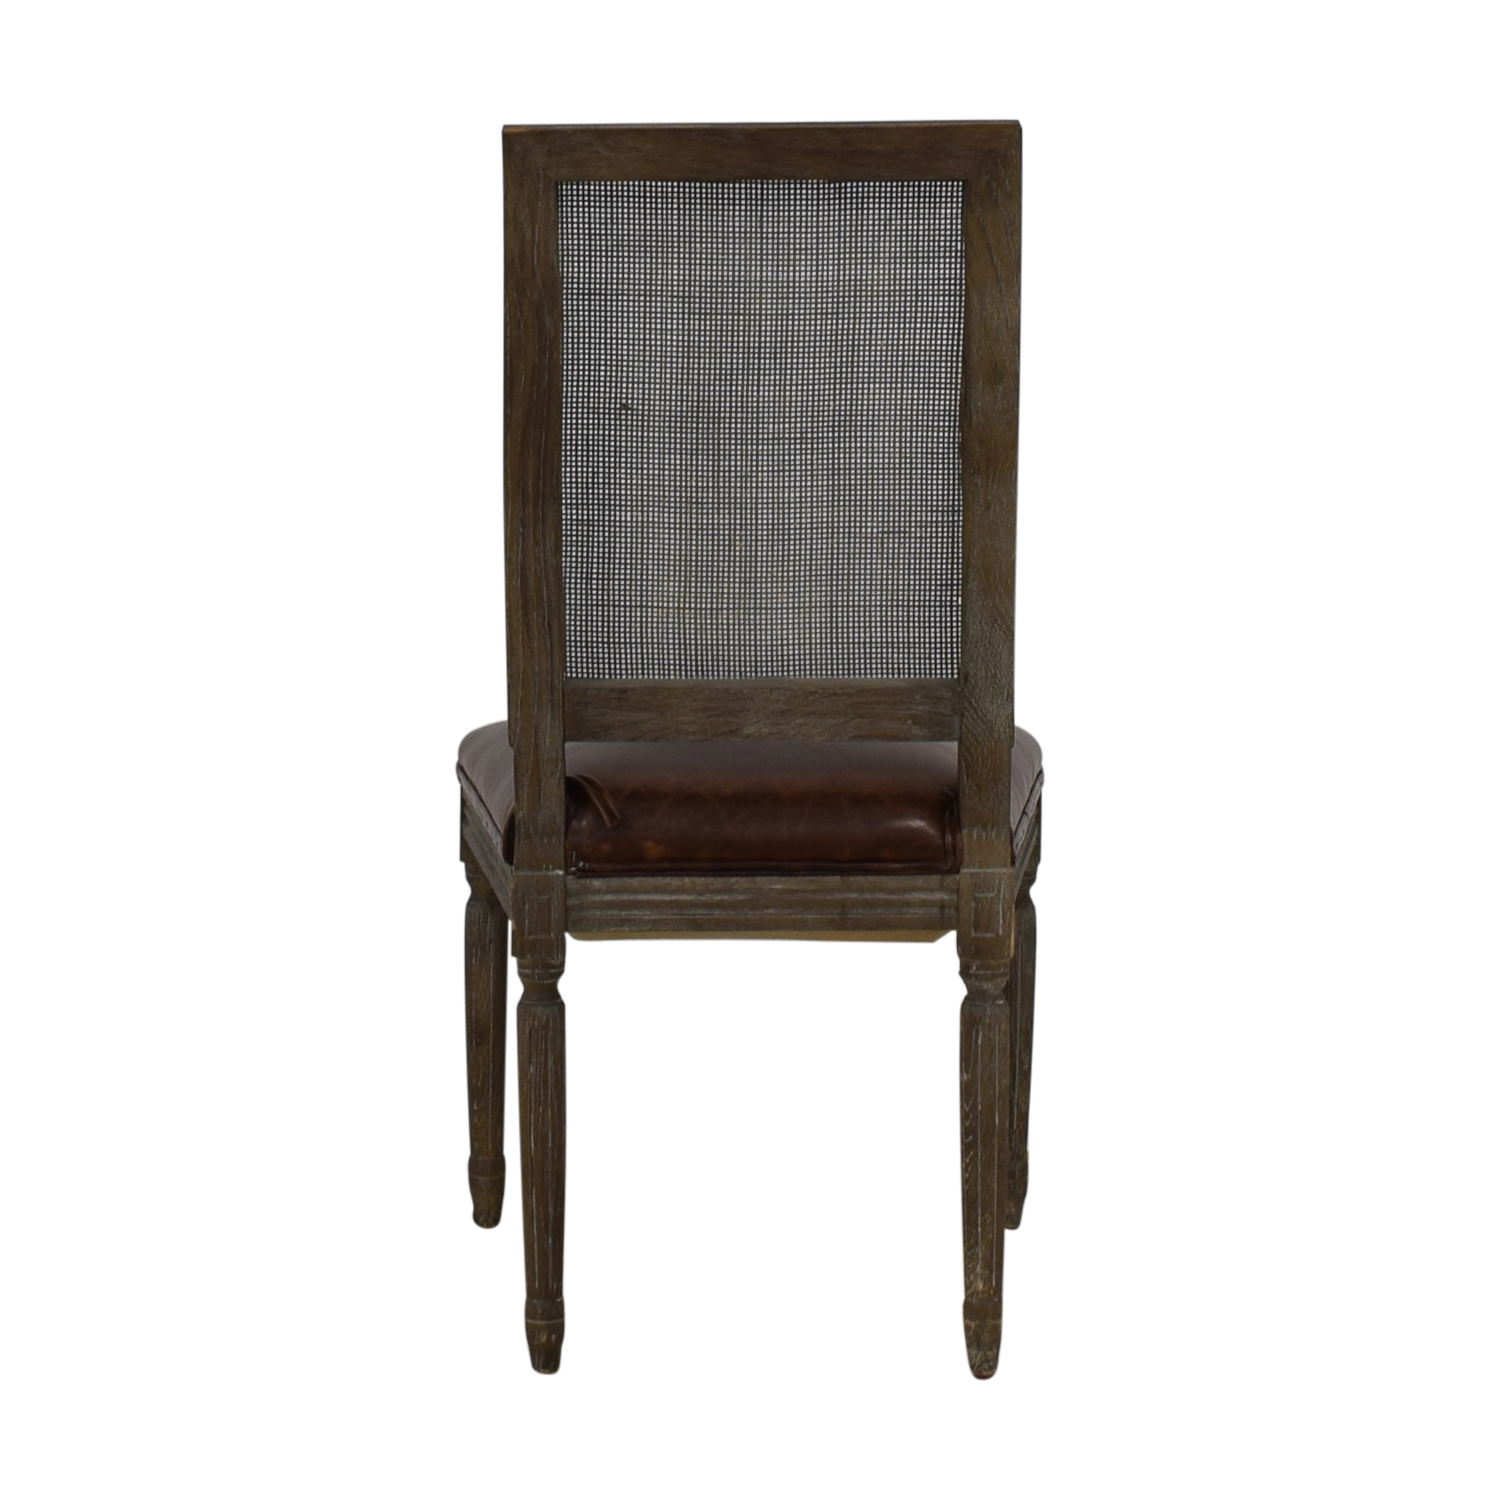 Restoration Hardware Restoration Hardware Vintage French Square Cane Back Leather Side Chair Brown